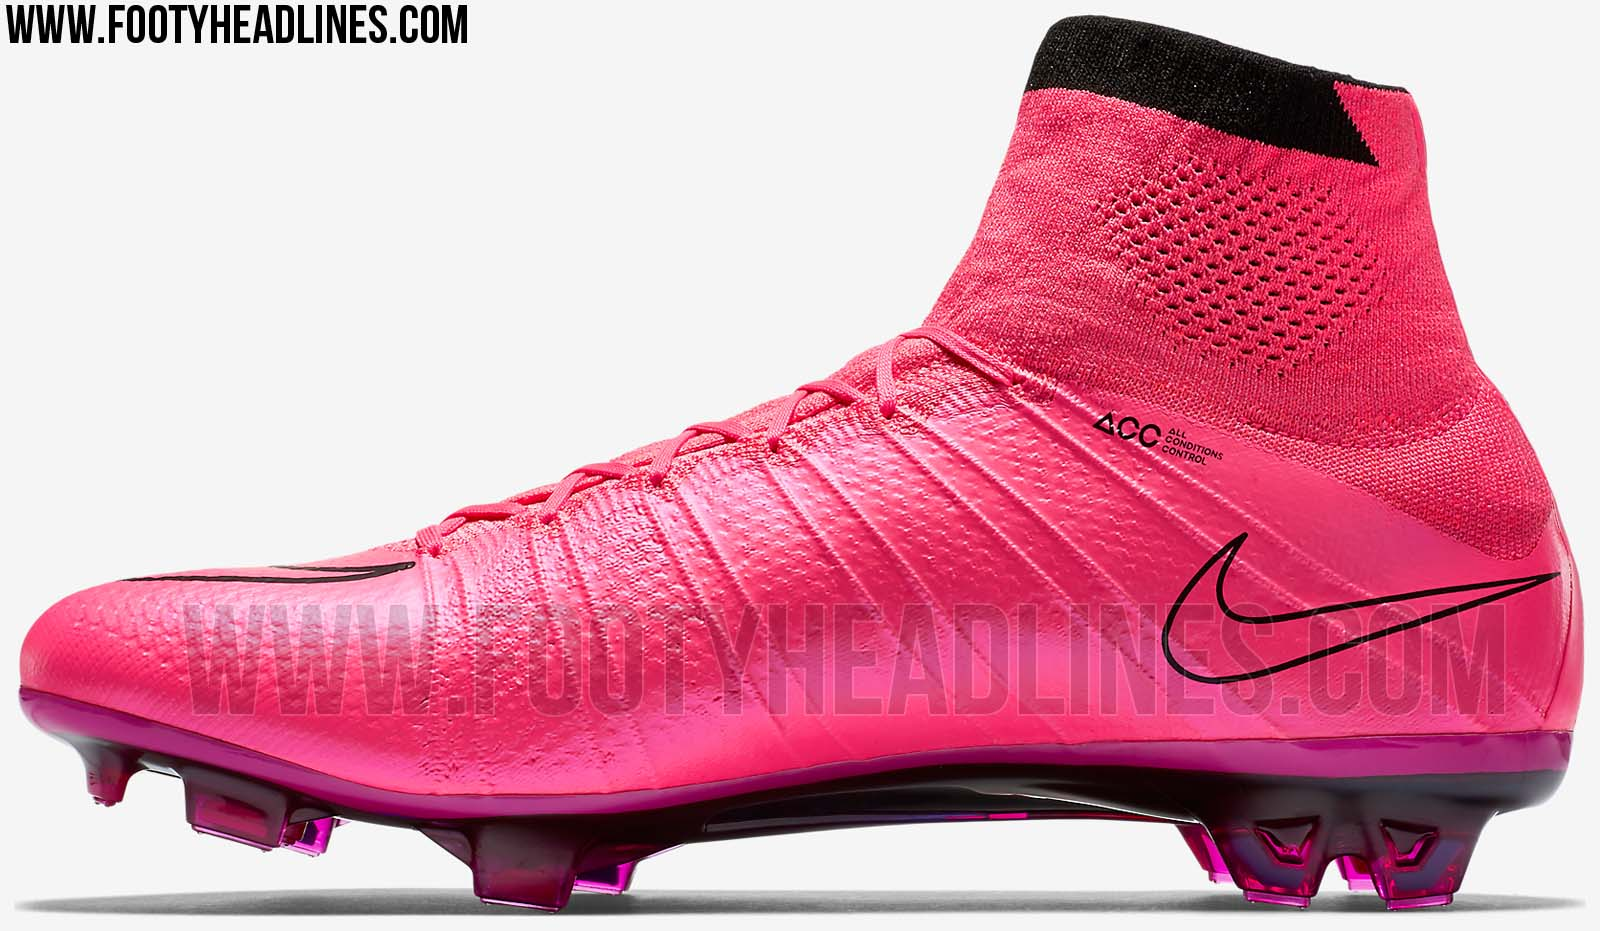 27226fe231a ... denmark pink nike mercurial superfly 2015 2016 boots released nike  mercurial superfly 4 c4ce5 e5194